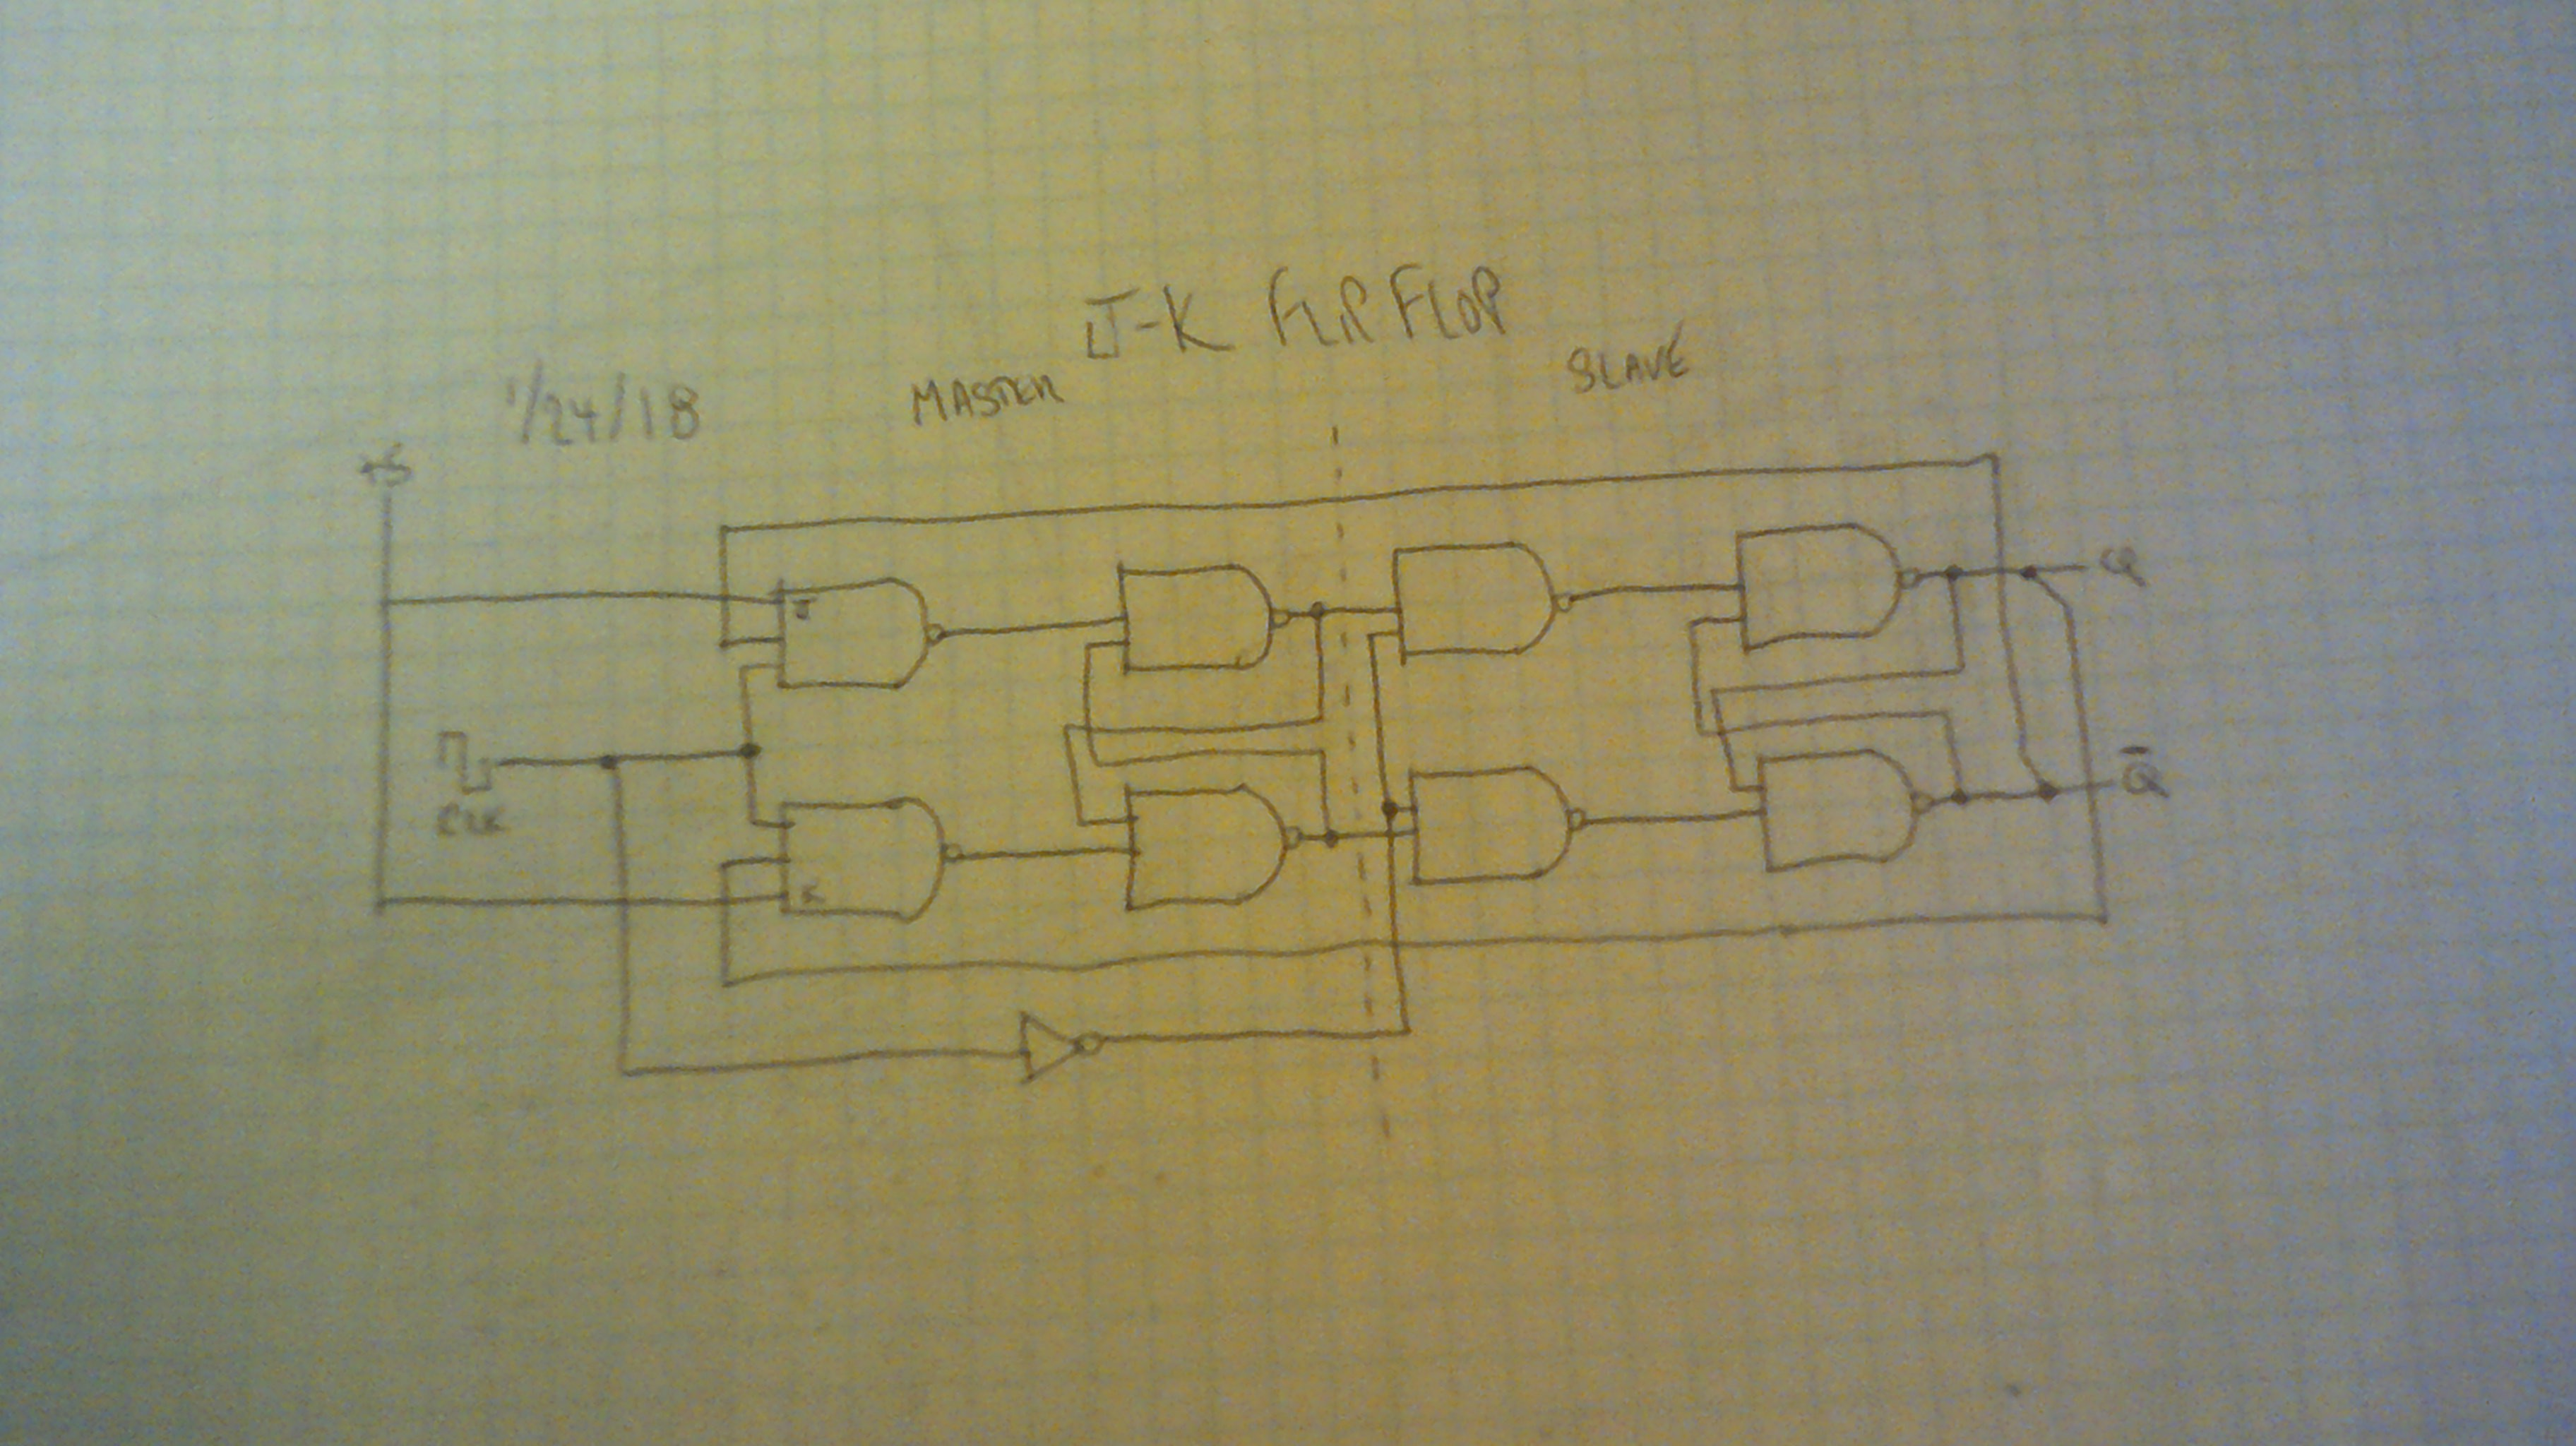 Light Logic Master Diagram Going To Use The Same Layout As I Used For Io And Clocked With Astable Multi Vibrator